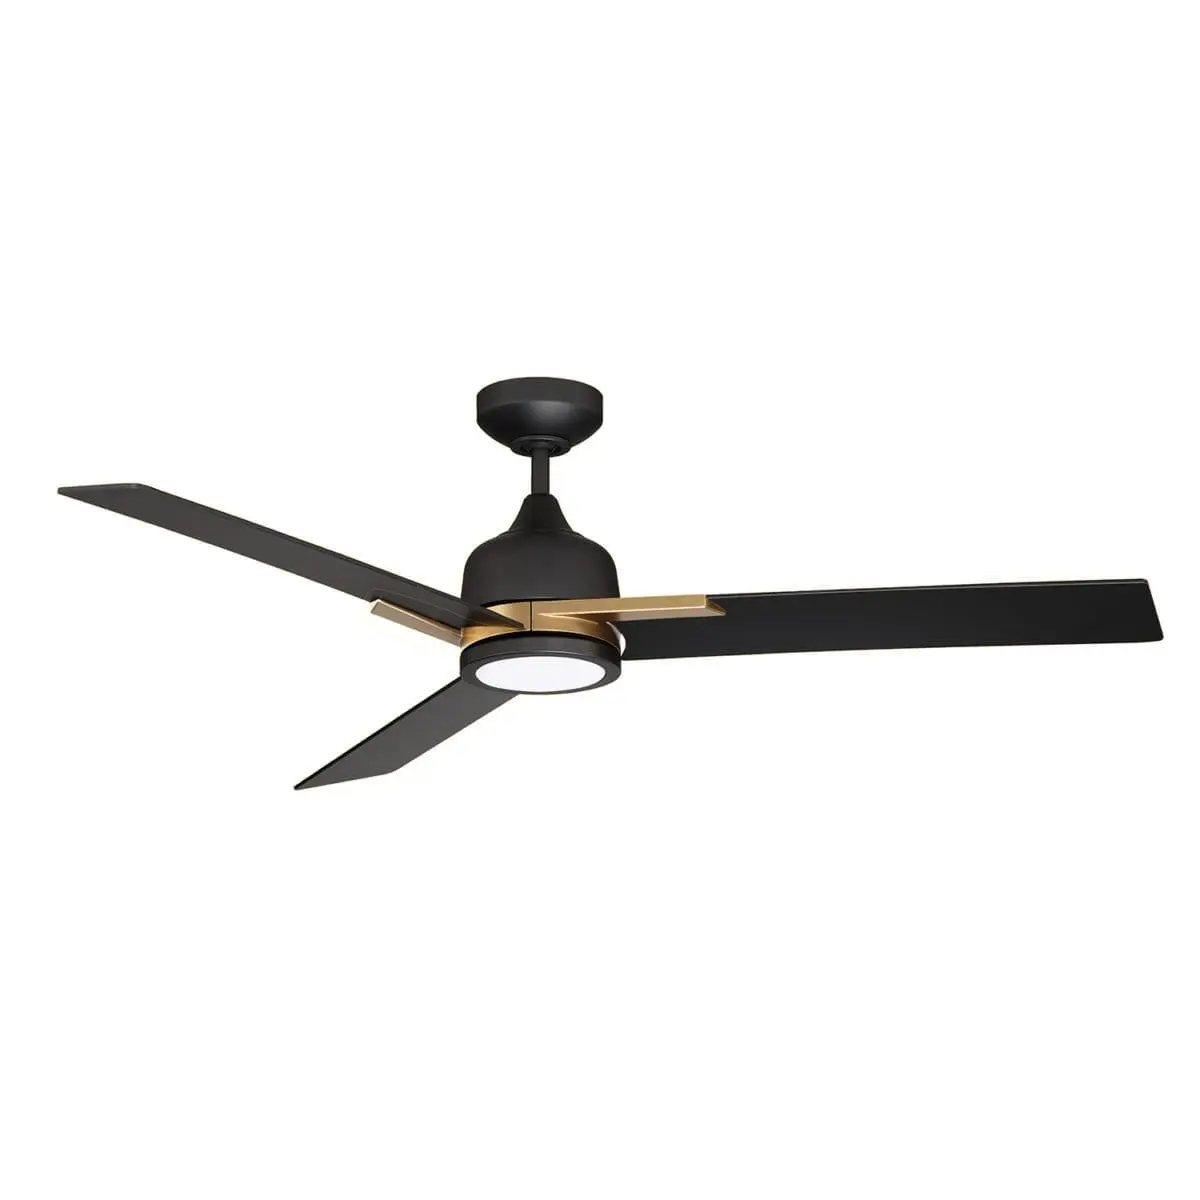 """148 AC22452 52"""" in Black and Gold,  Black and Nickle, or all Nickle Regular Price $598.99 Sale Price $376.99"""